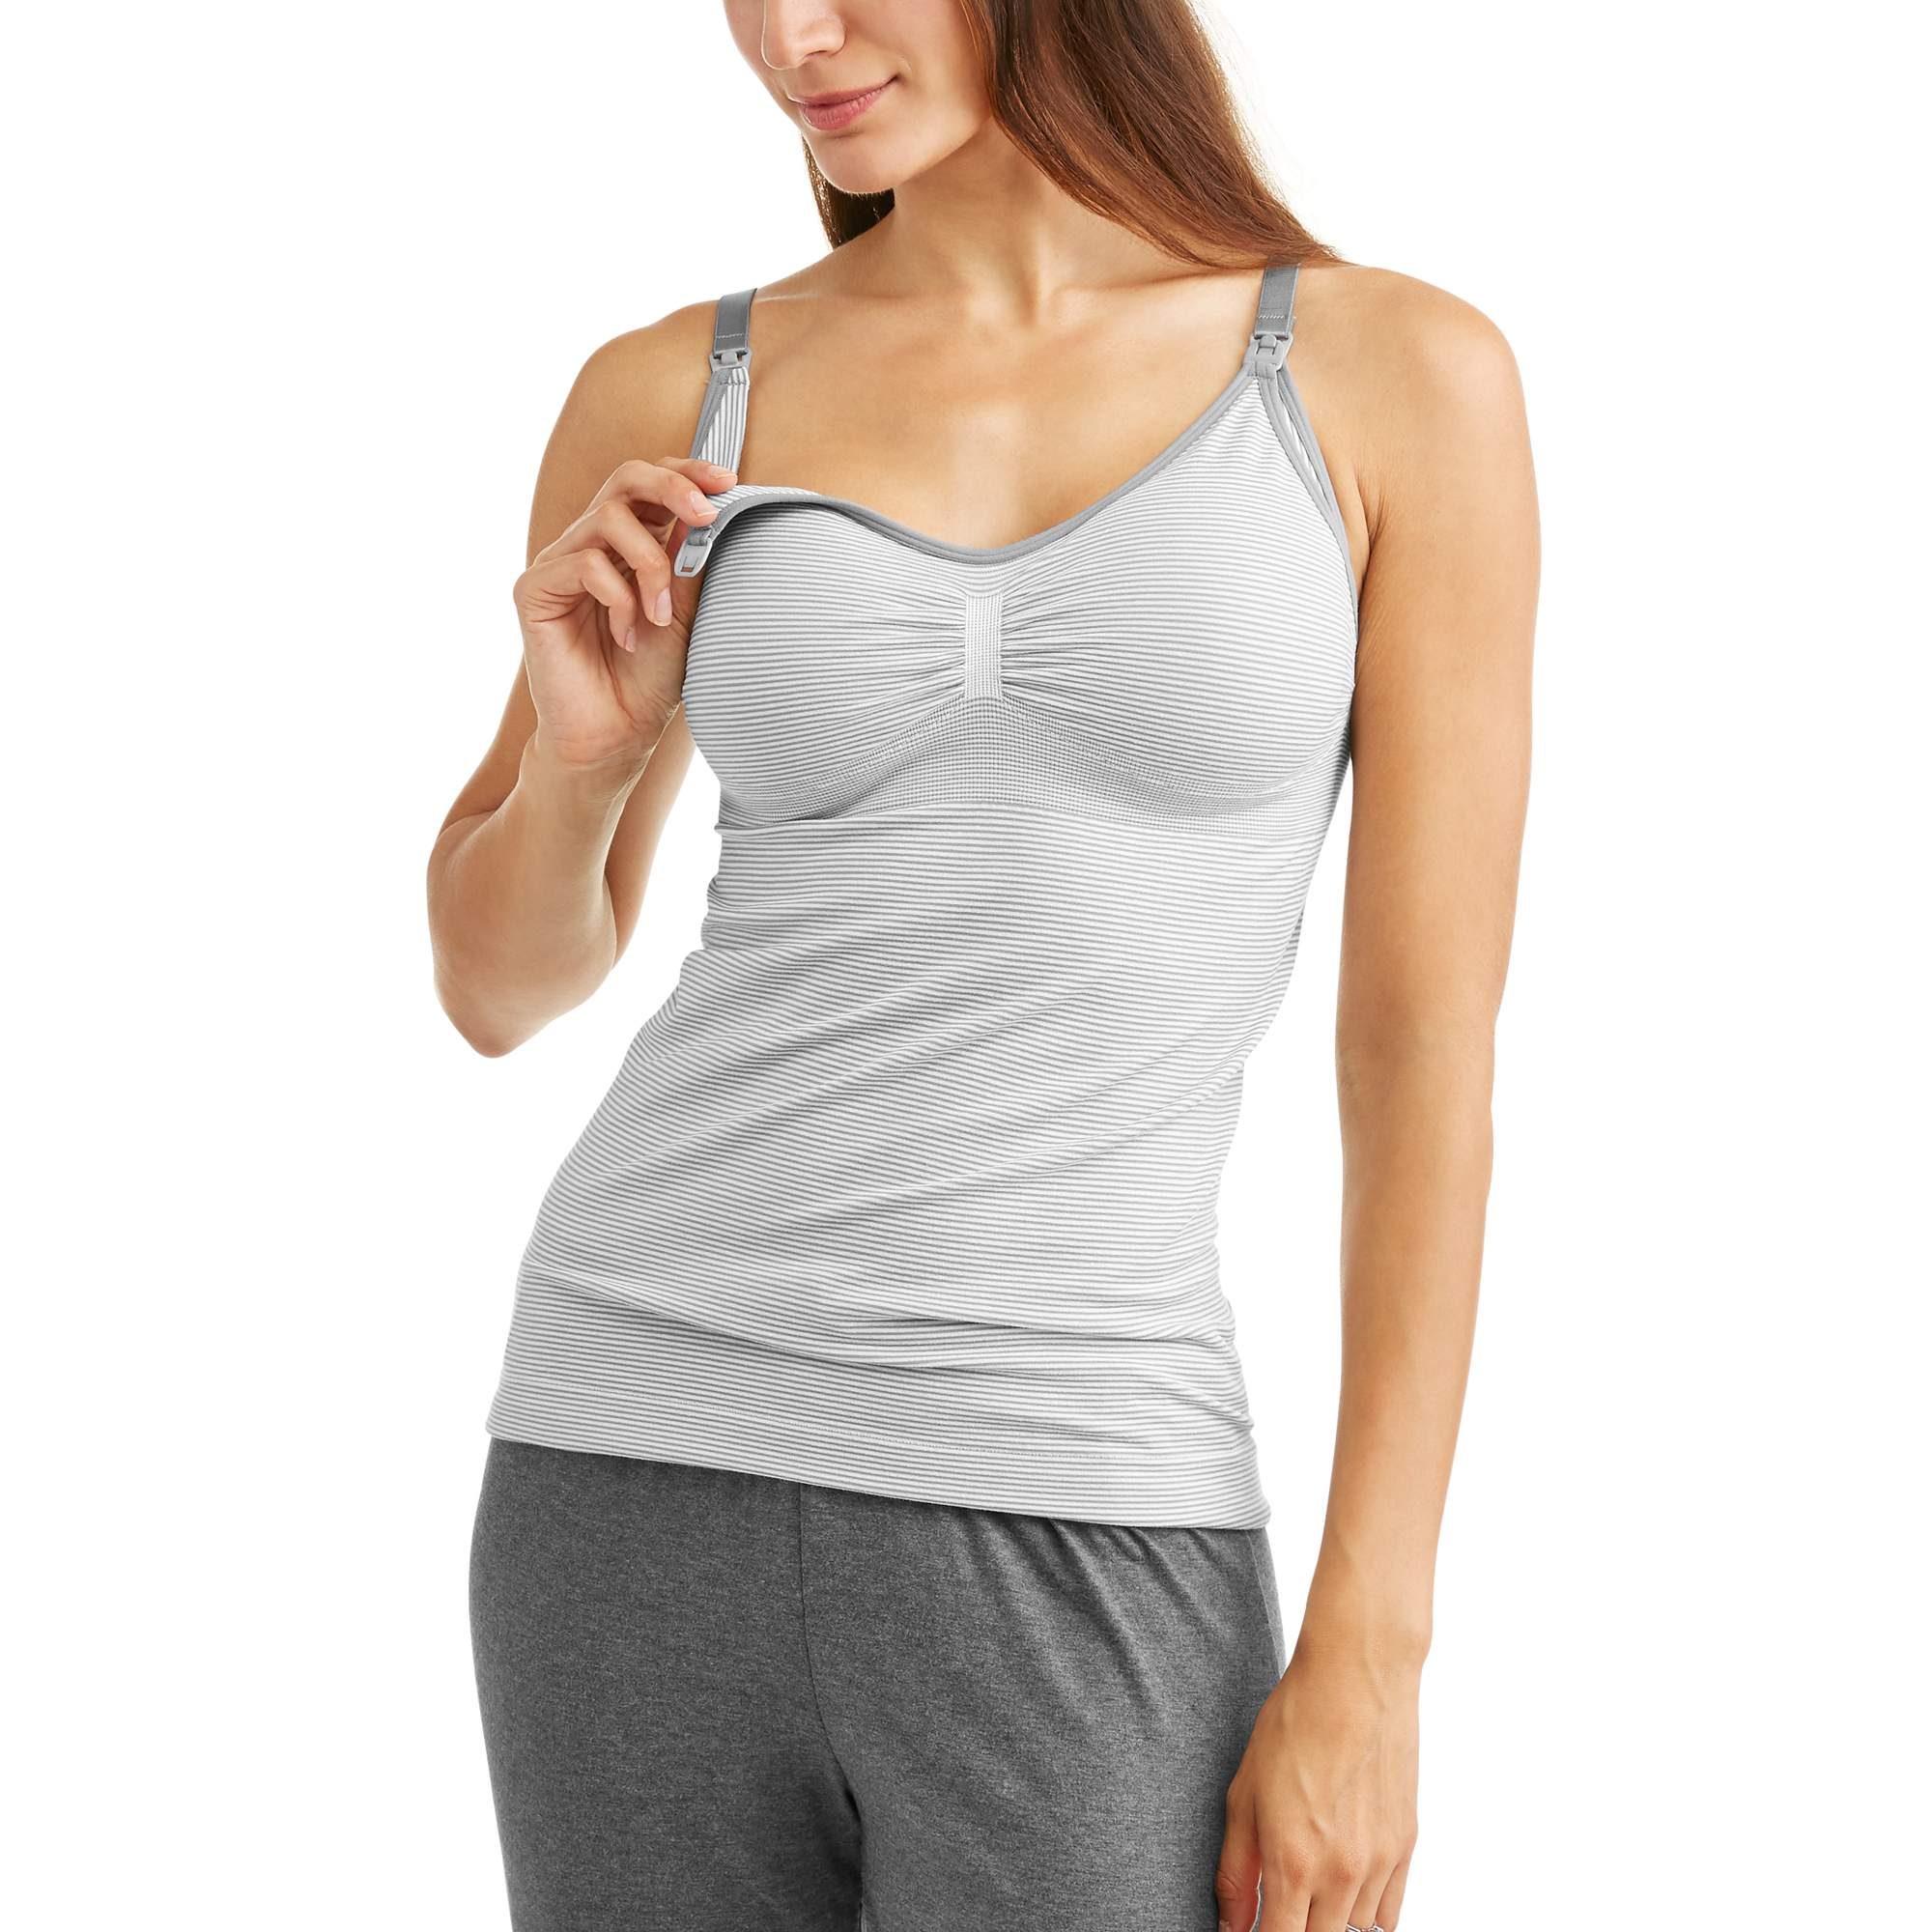 Labor Of Love Seamless Nursing Cami With Removable Pads-- Available In Plus Size